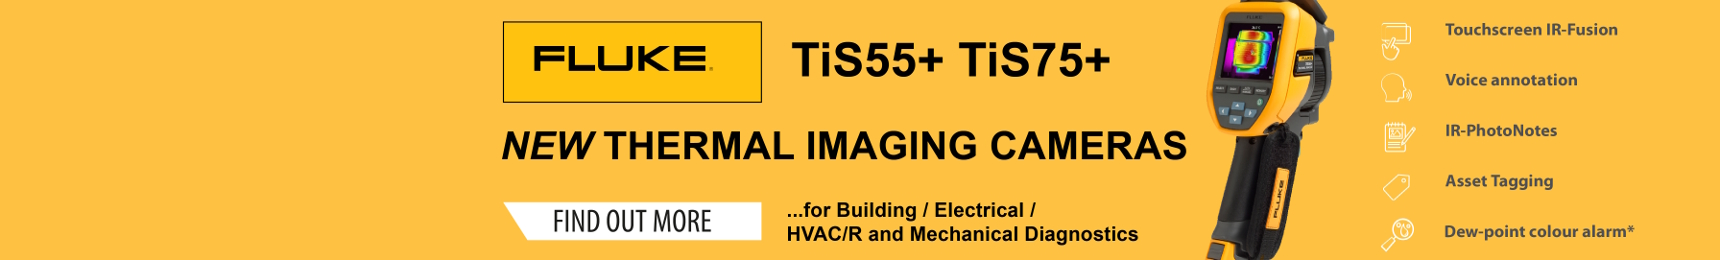 FLUKE TiS55+ and TiS75+ Thermal Imaging Cameras